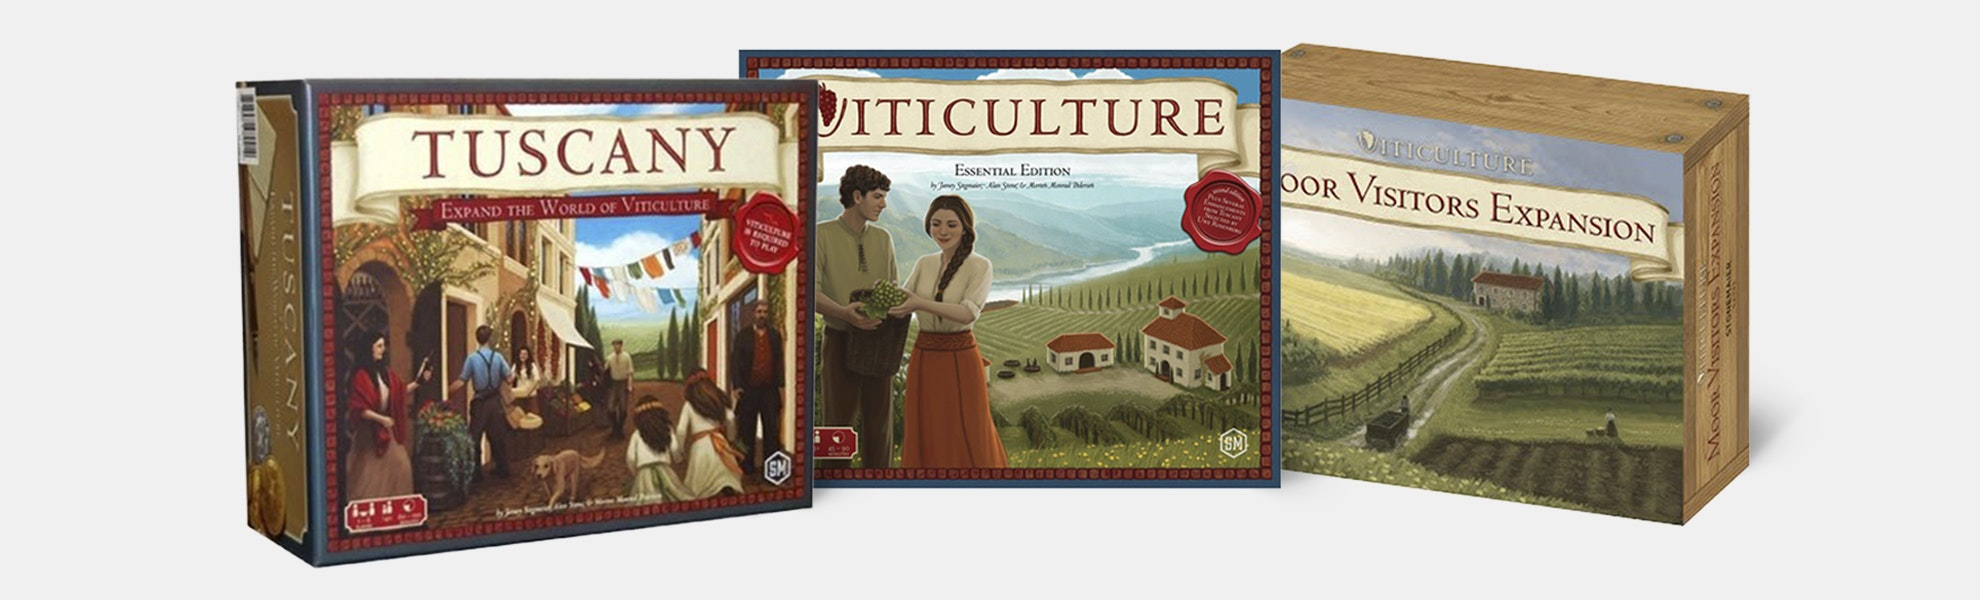 Viticulture Essential Edition Board Game Bundle